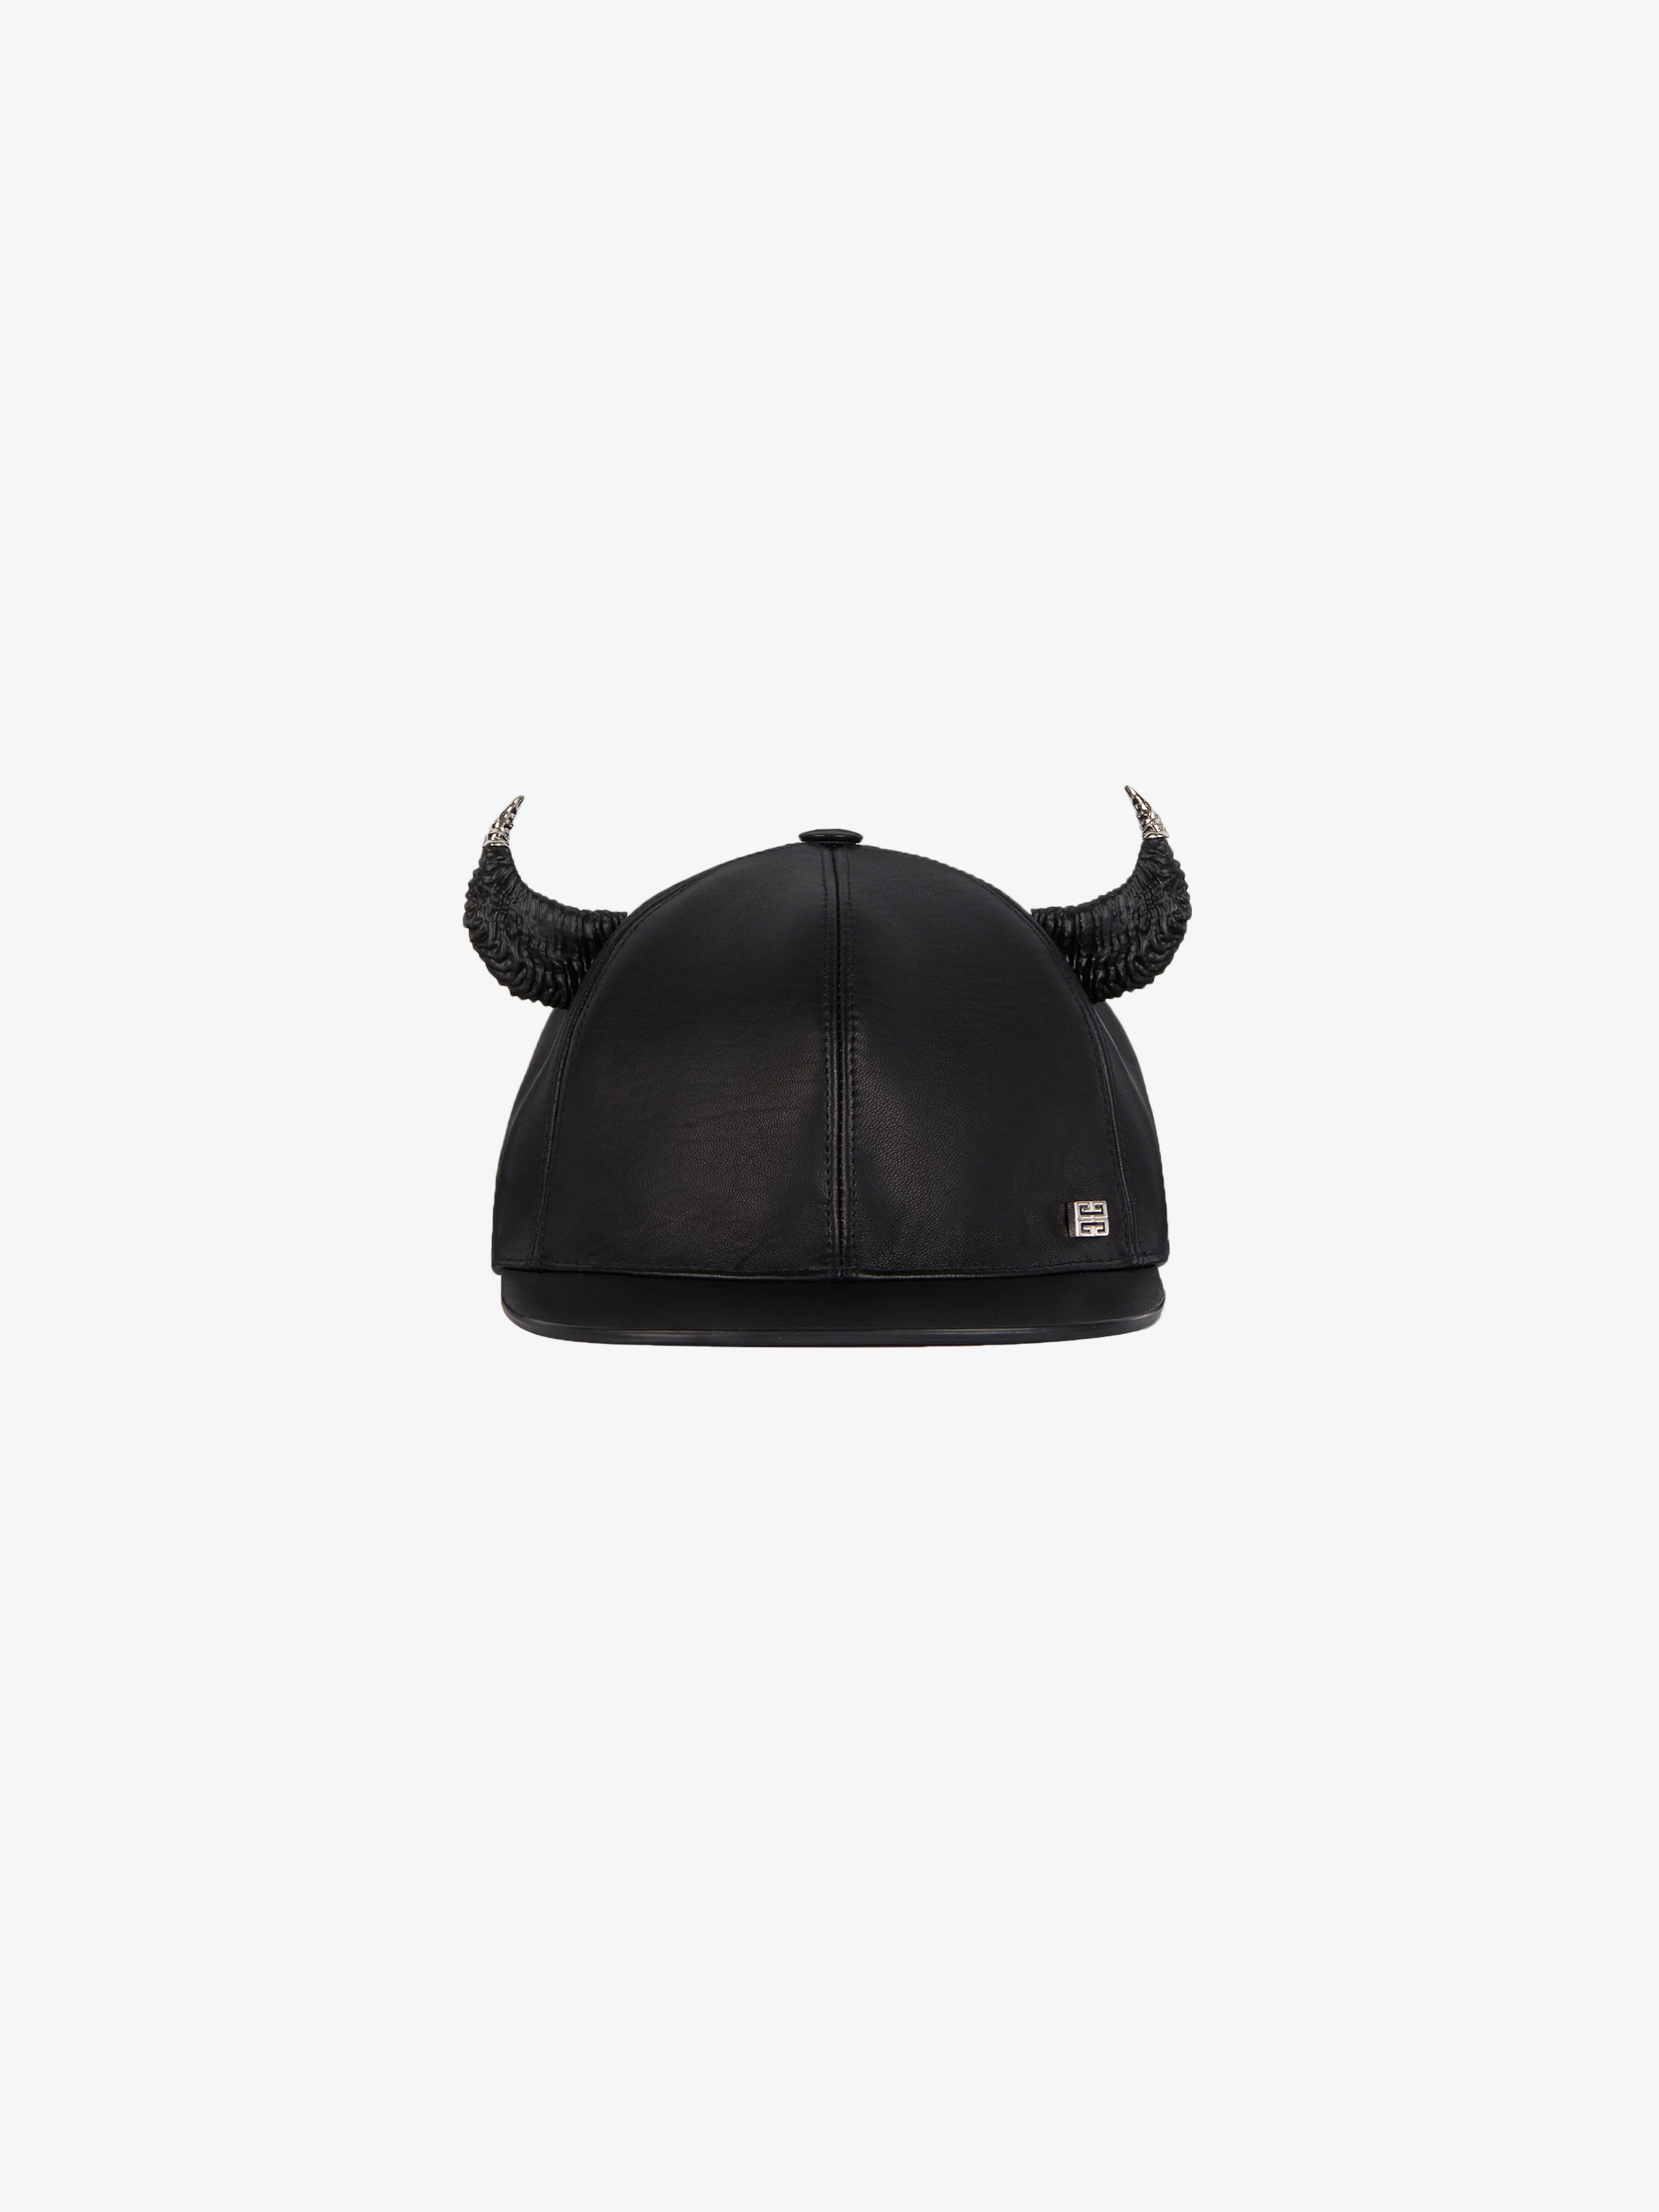 Cap in leather with horns